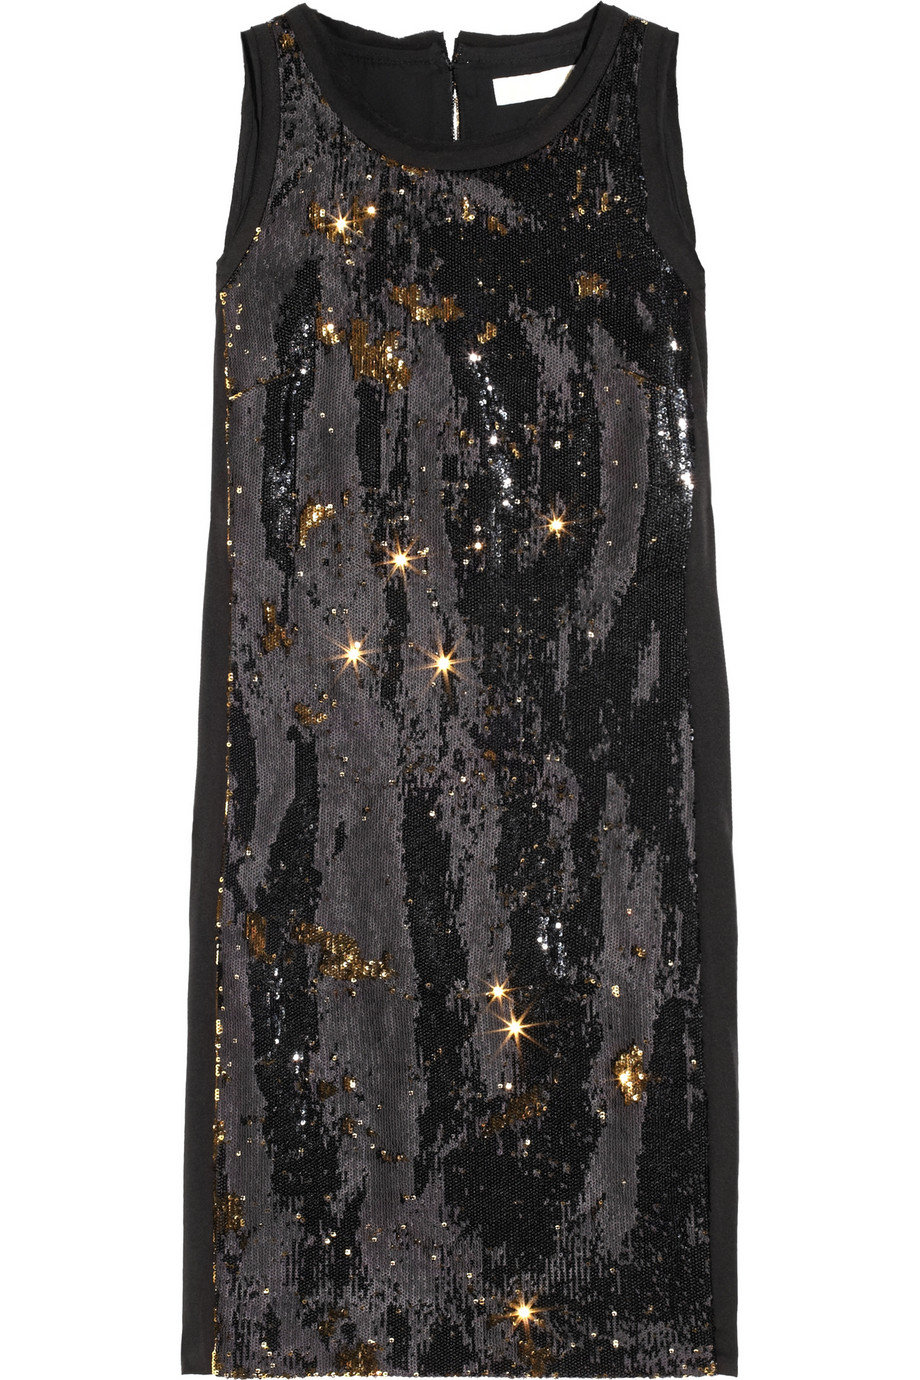 MICHAEL MICHAEL KORS Two-tone sequin-embellished crepe dress